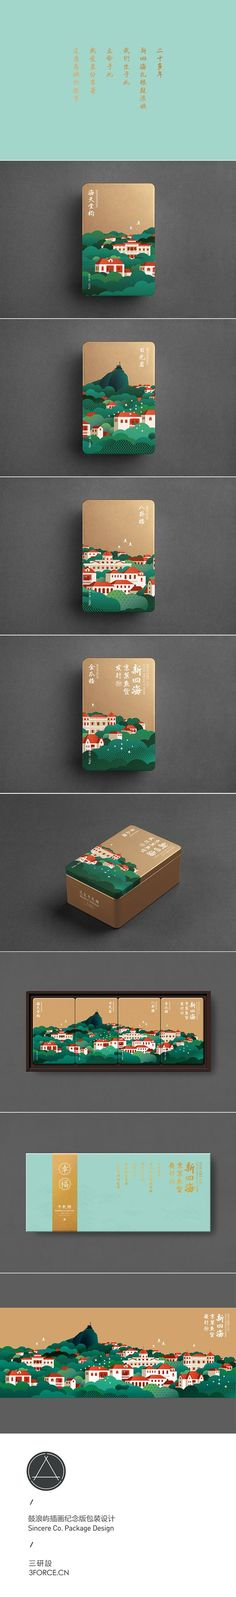 Sincere Co. Nougat Packaging / 新四海牛軋糖包裝設計 on Behance: